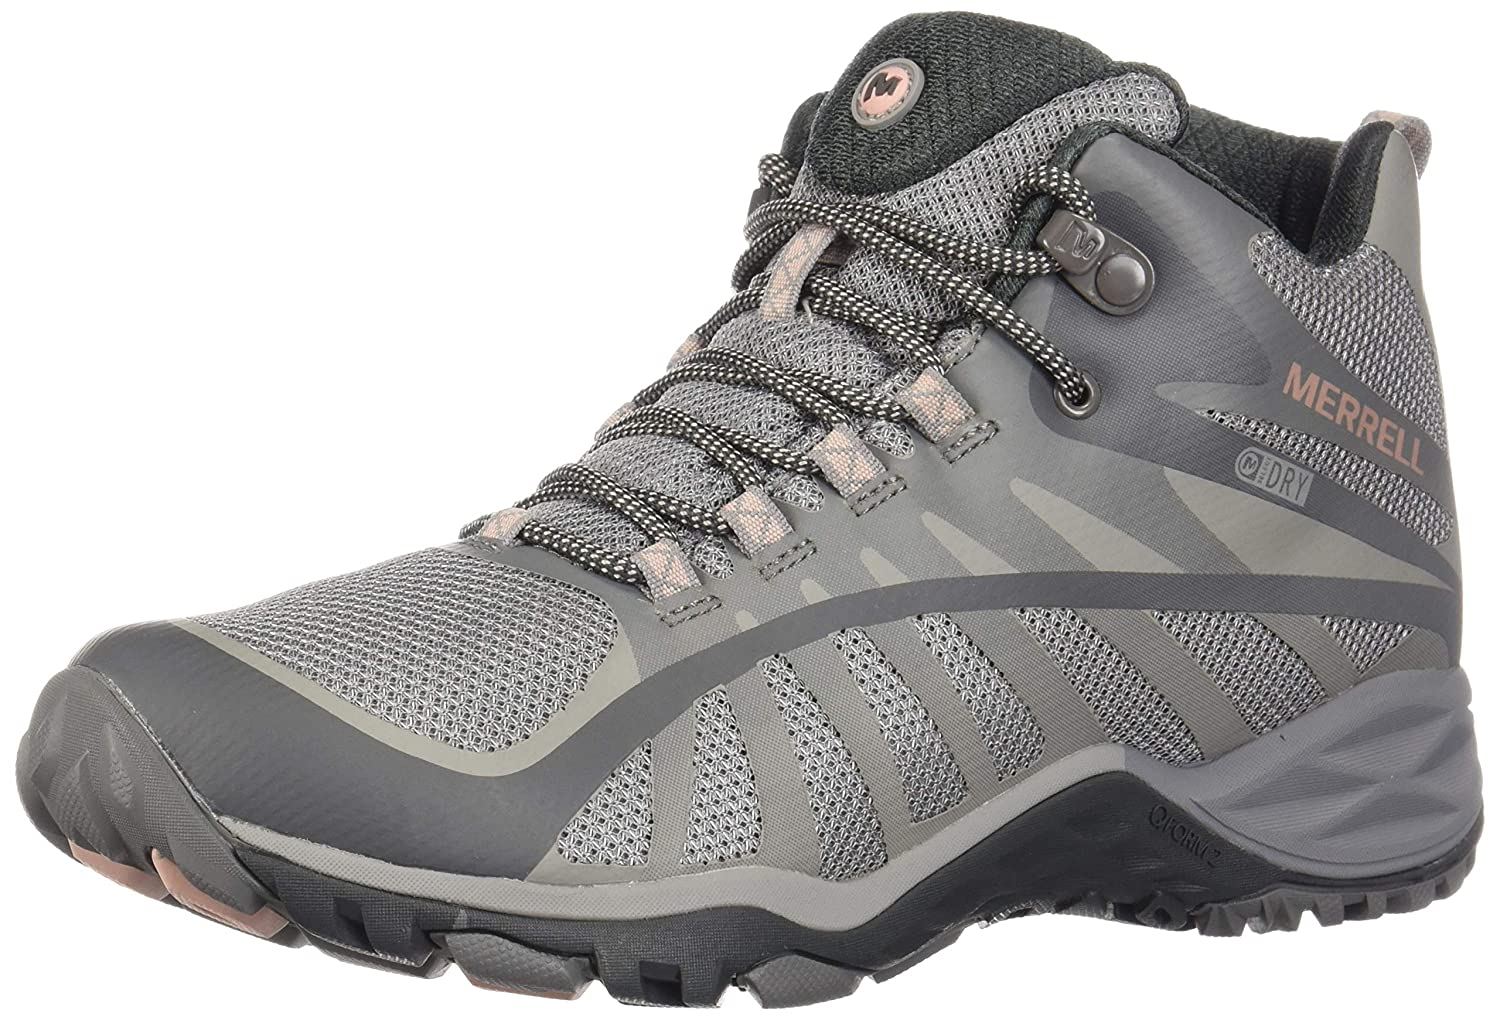 Frost Merrell Womens Siren Edge Q2 M Hiking shoes